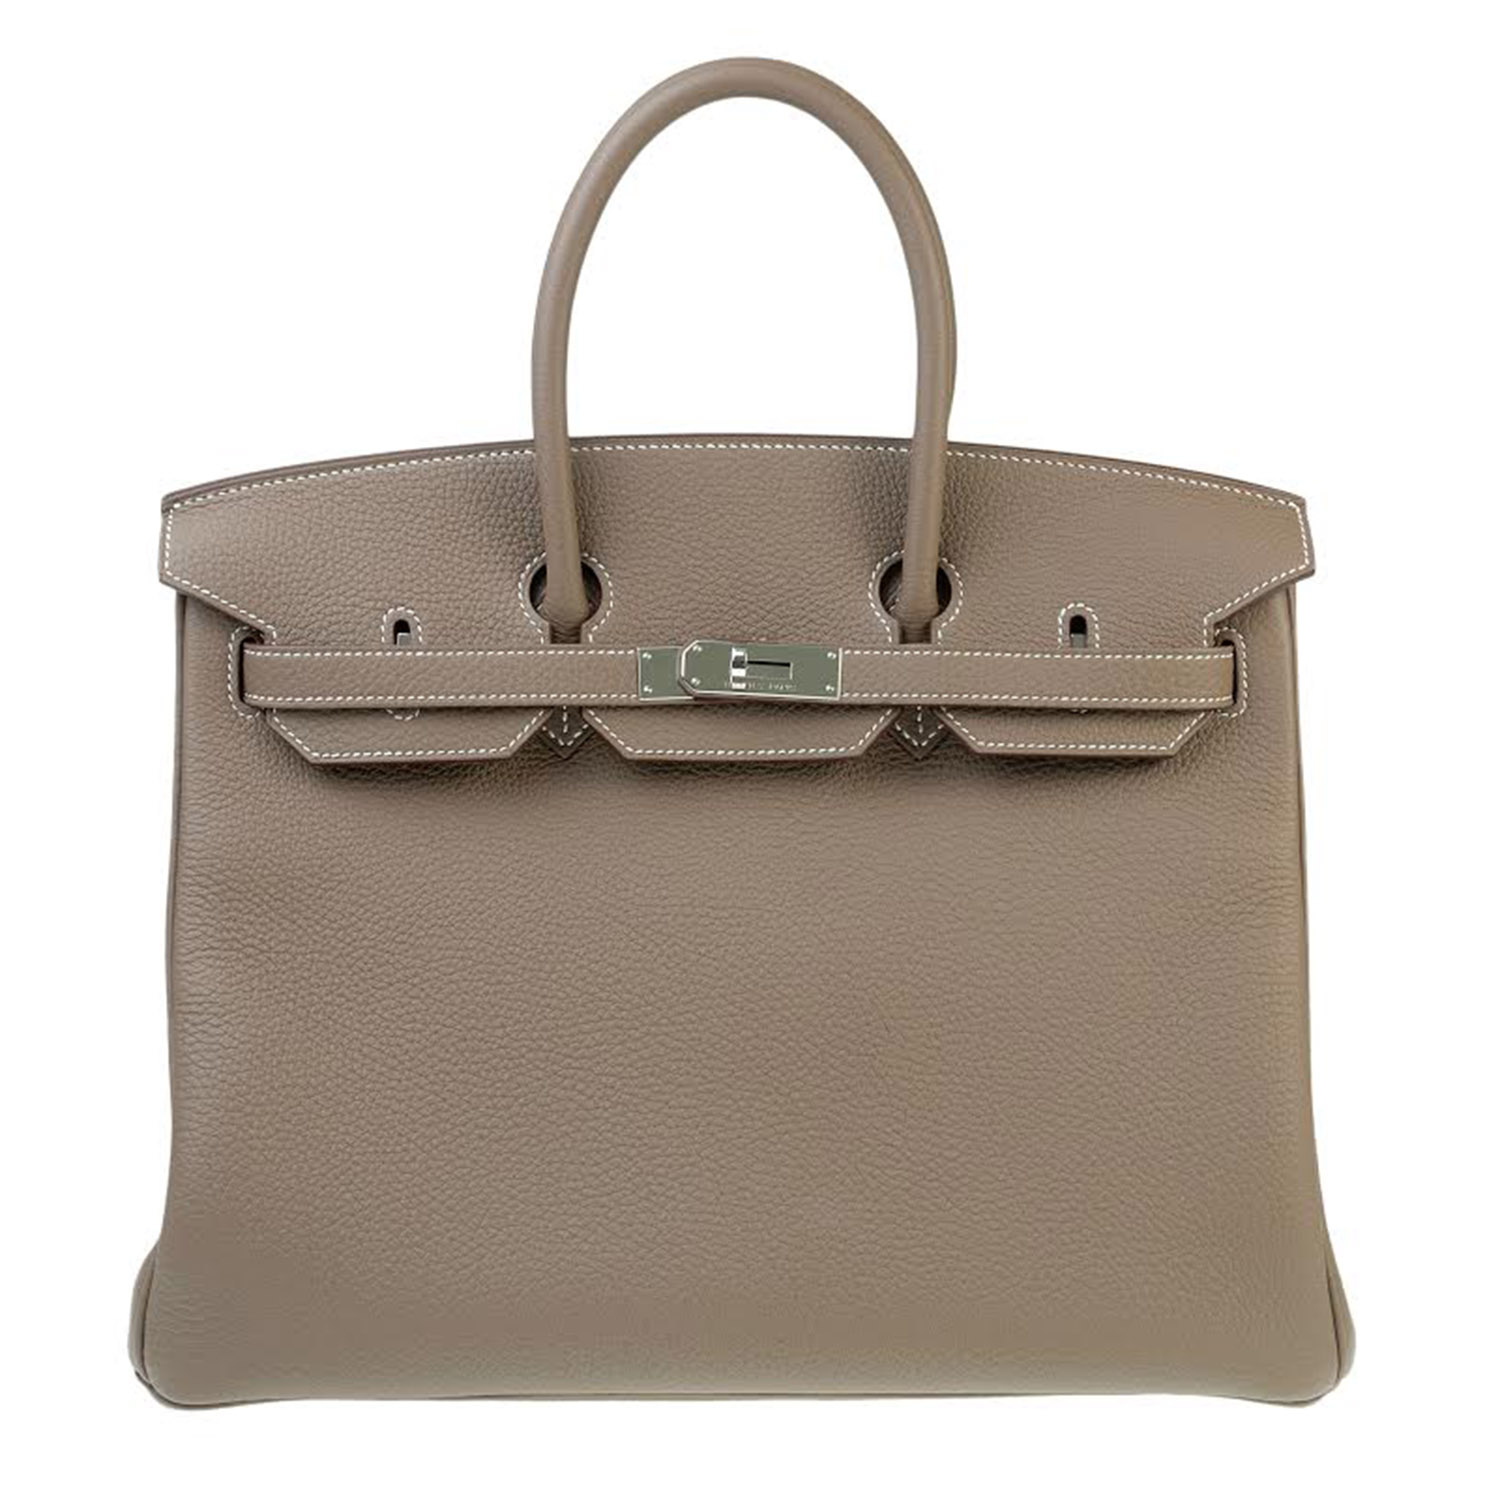 Handbag For Rent Hermès Birkin